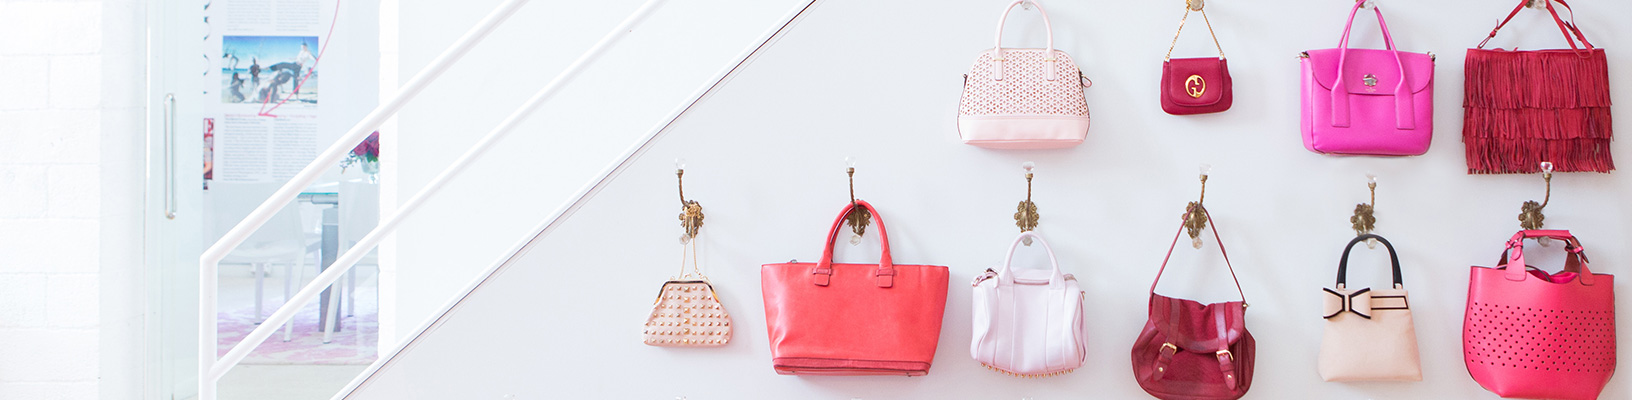 banner-home-purses